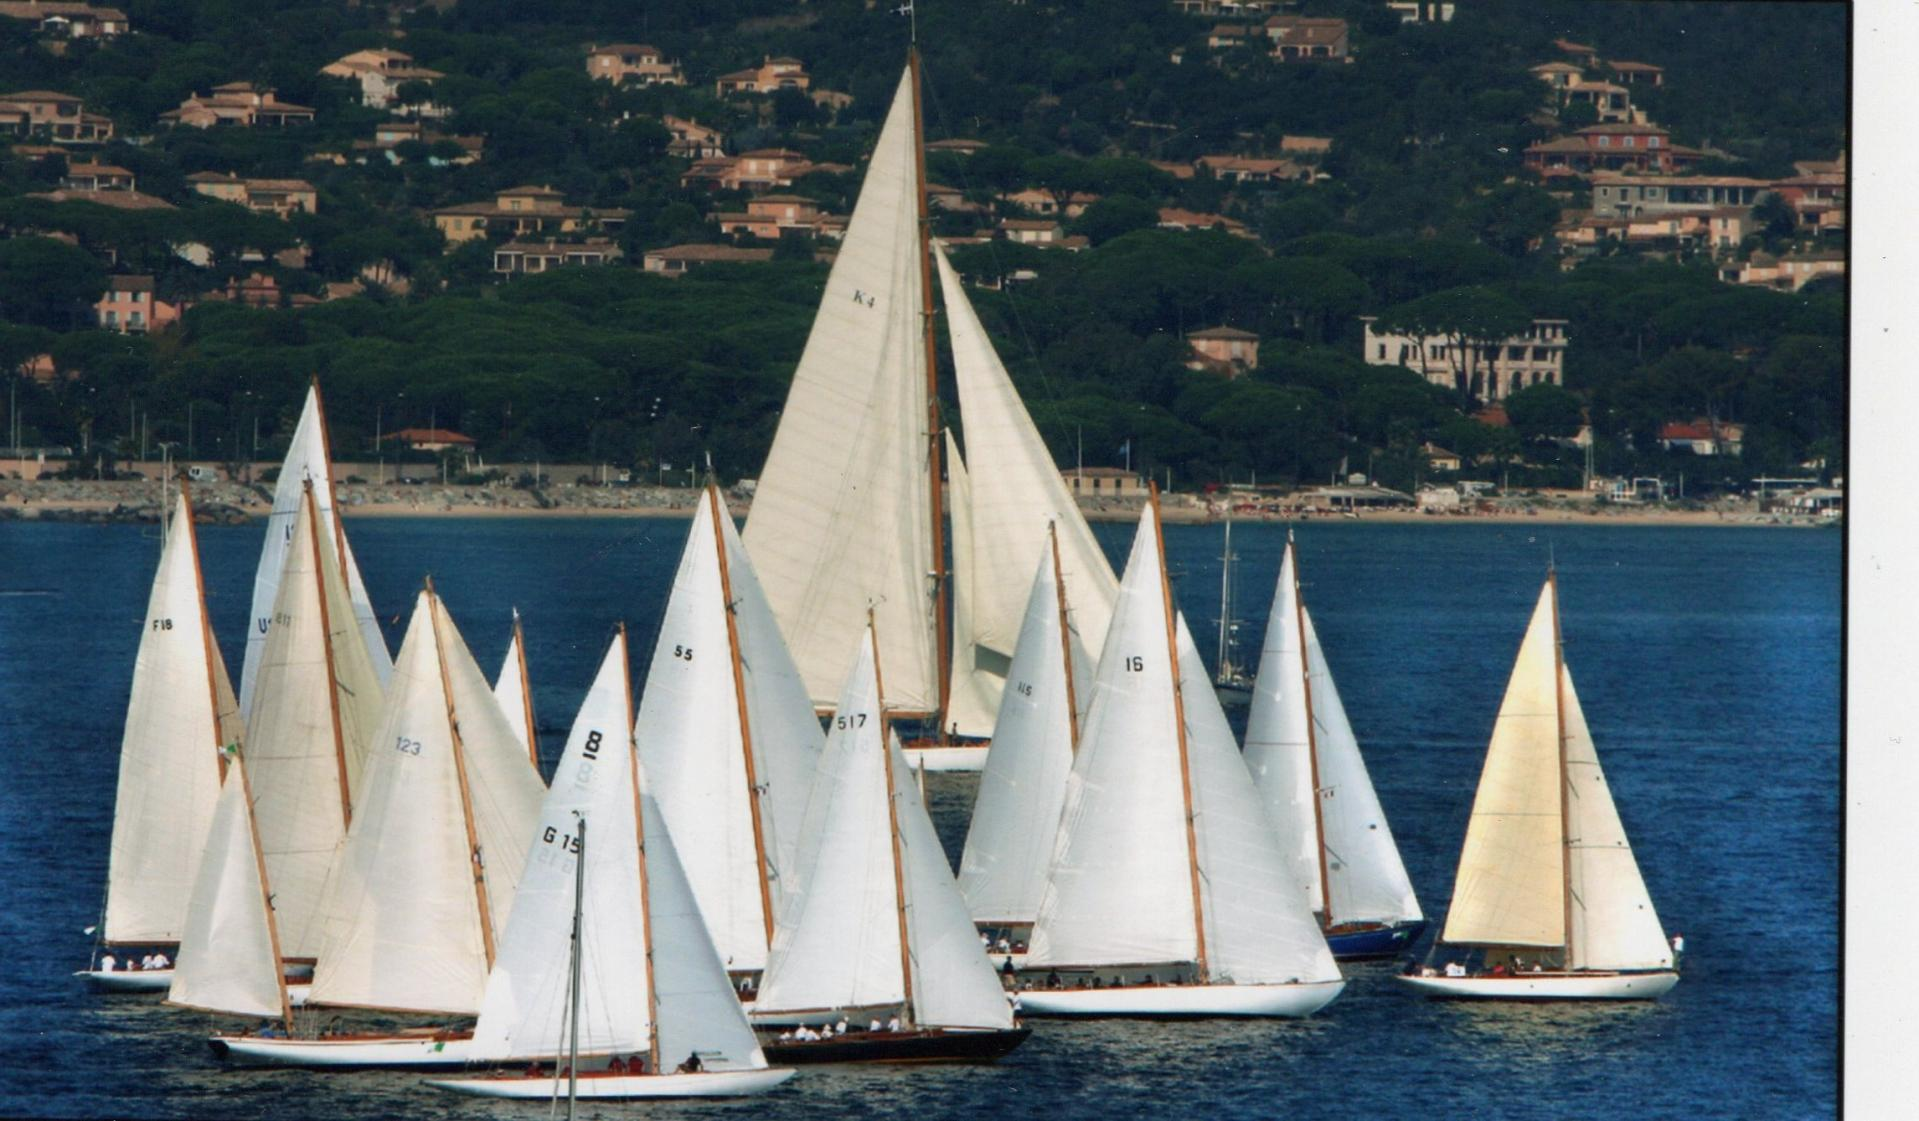 Saint-Tropez sails